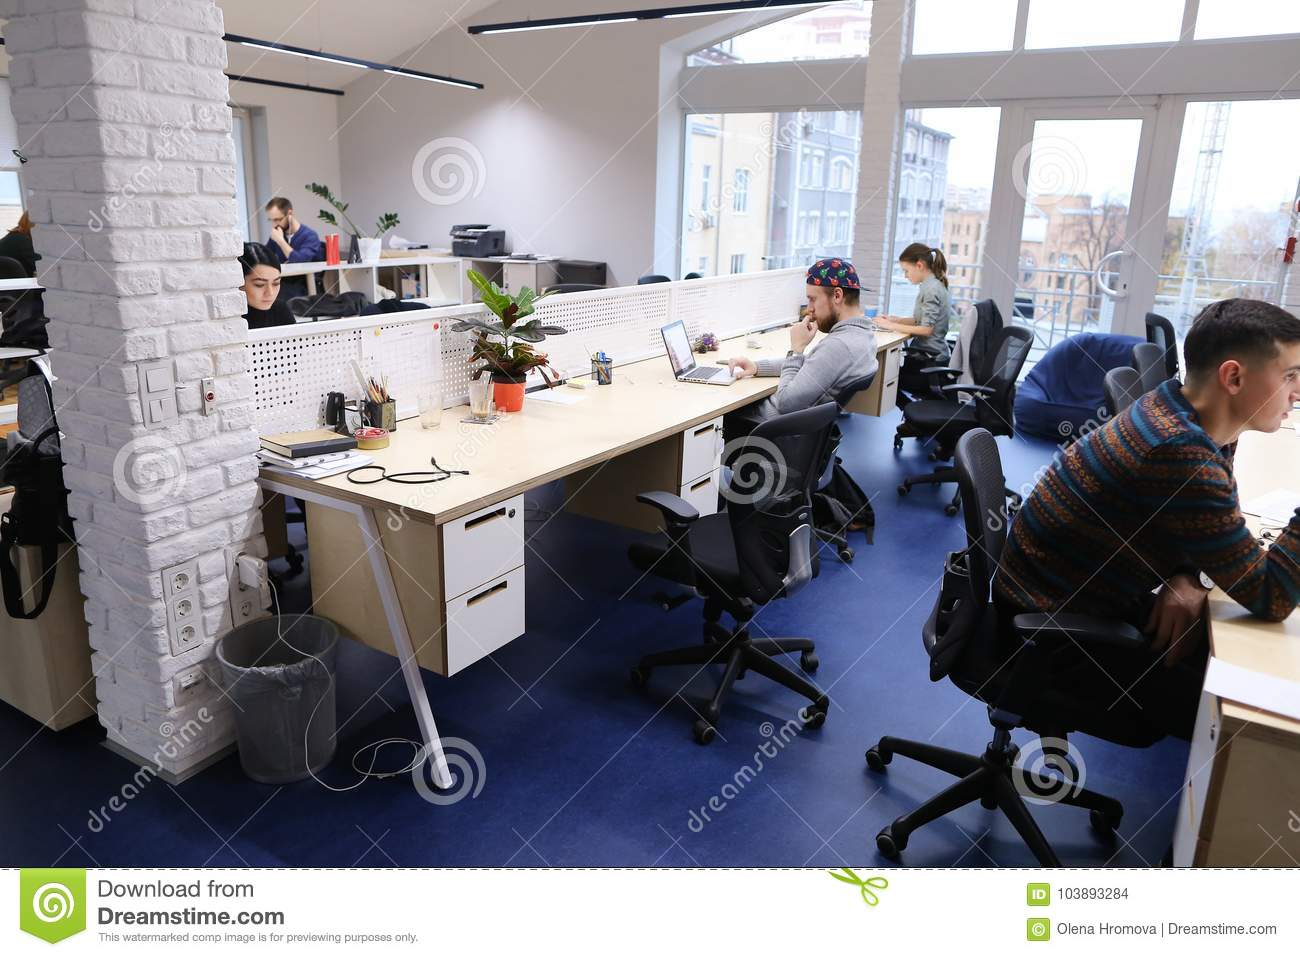 Office Space In Middle Of Working Day With People Immersed In Wo